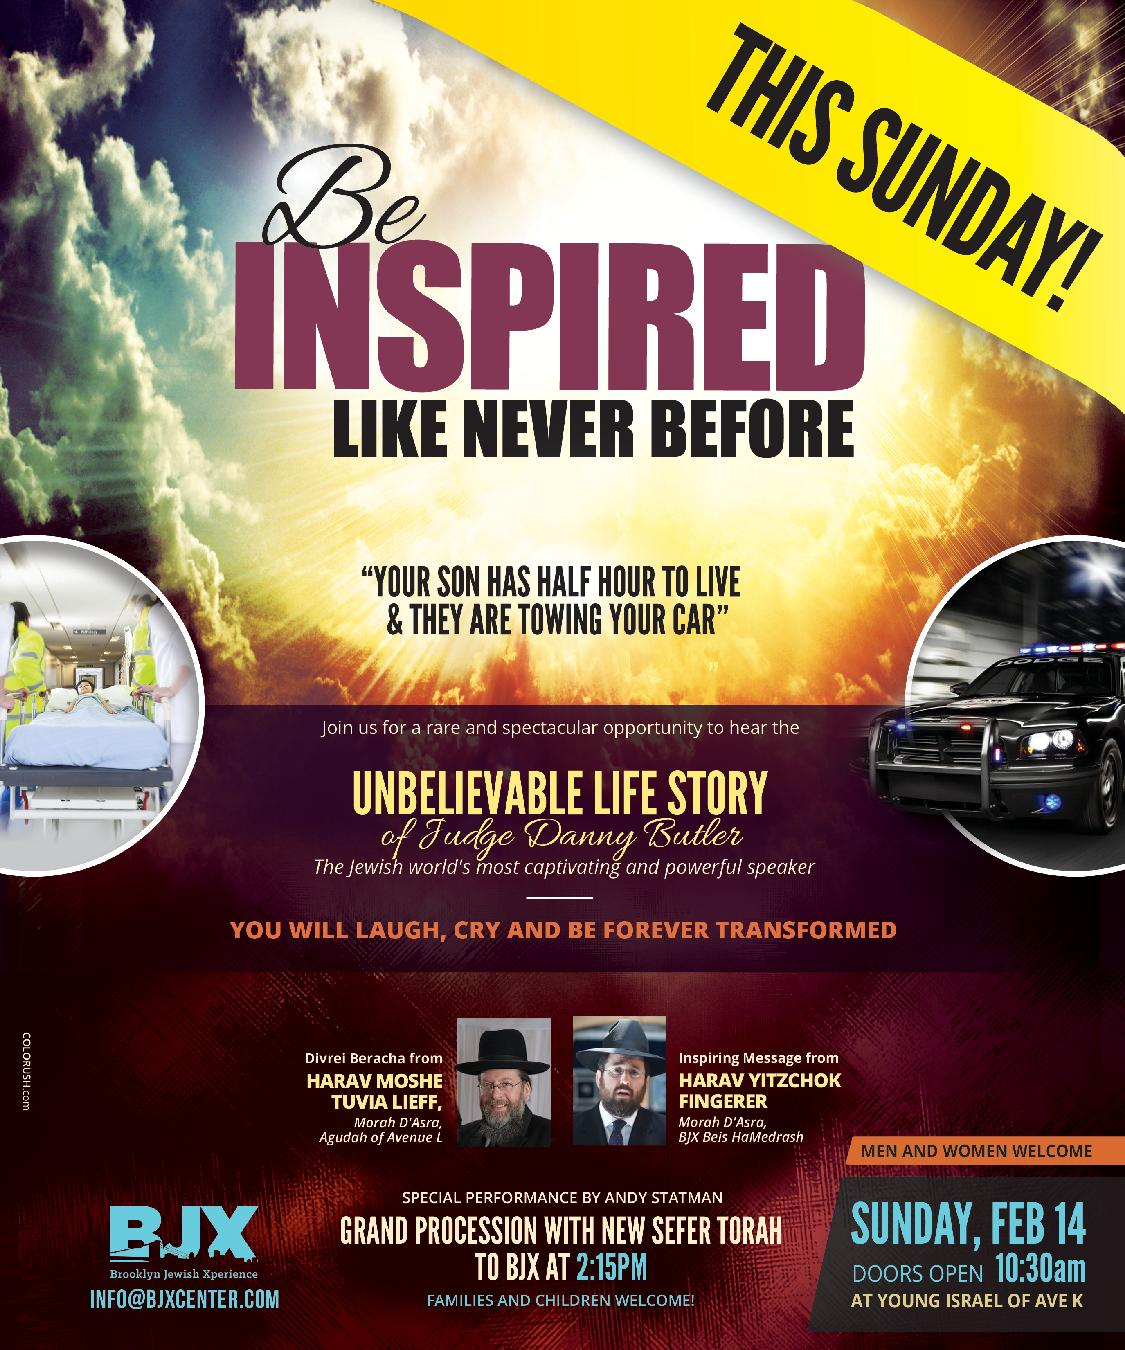 Day of Inspiration: This Sunday! Doors Open 10:30am